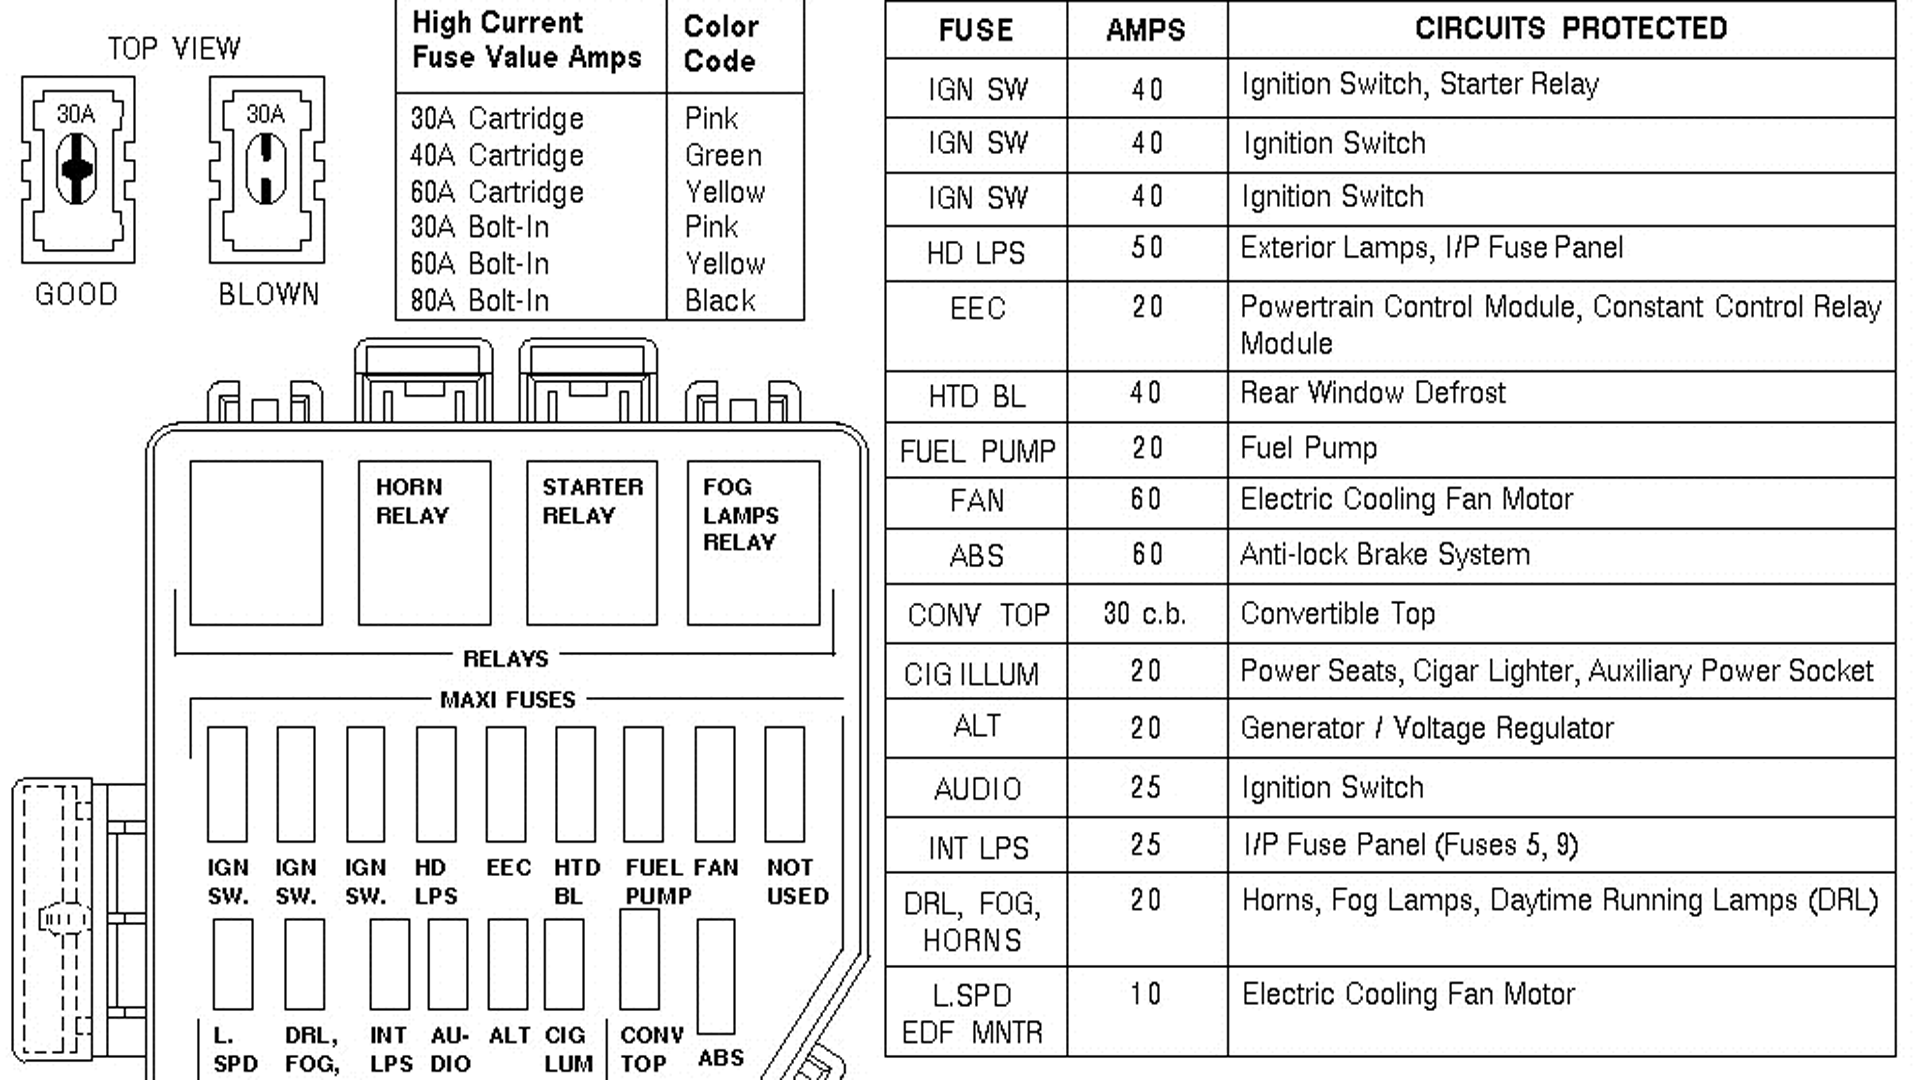 [SCHEMATICS_44OR]  Ford Mustang V6 and Mustang GT 1994-2004: Fuse Box Diagram | Mustangforums | Ford Mustang 2004 Fuse Box |  | Mustang Forums